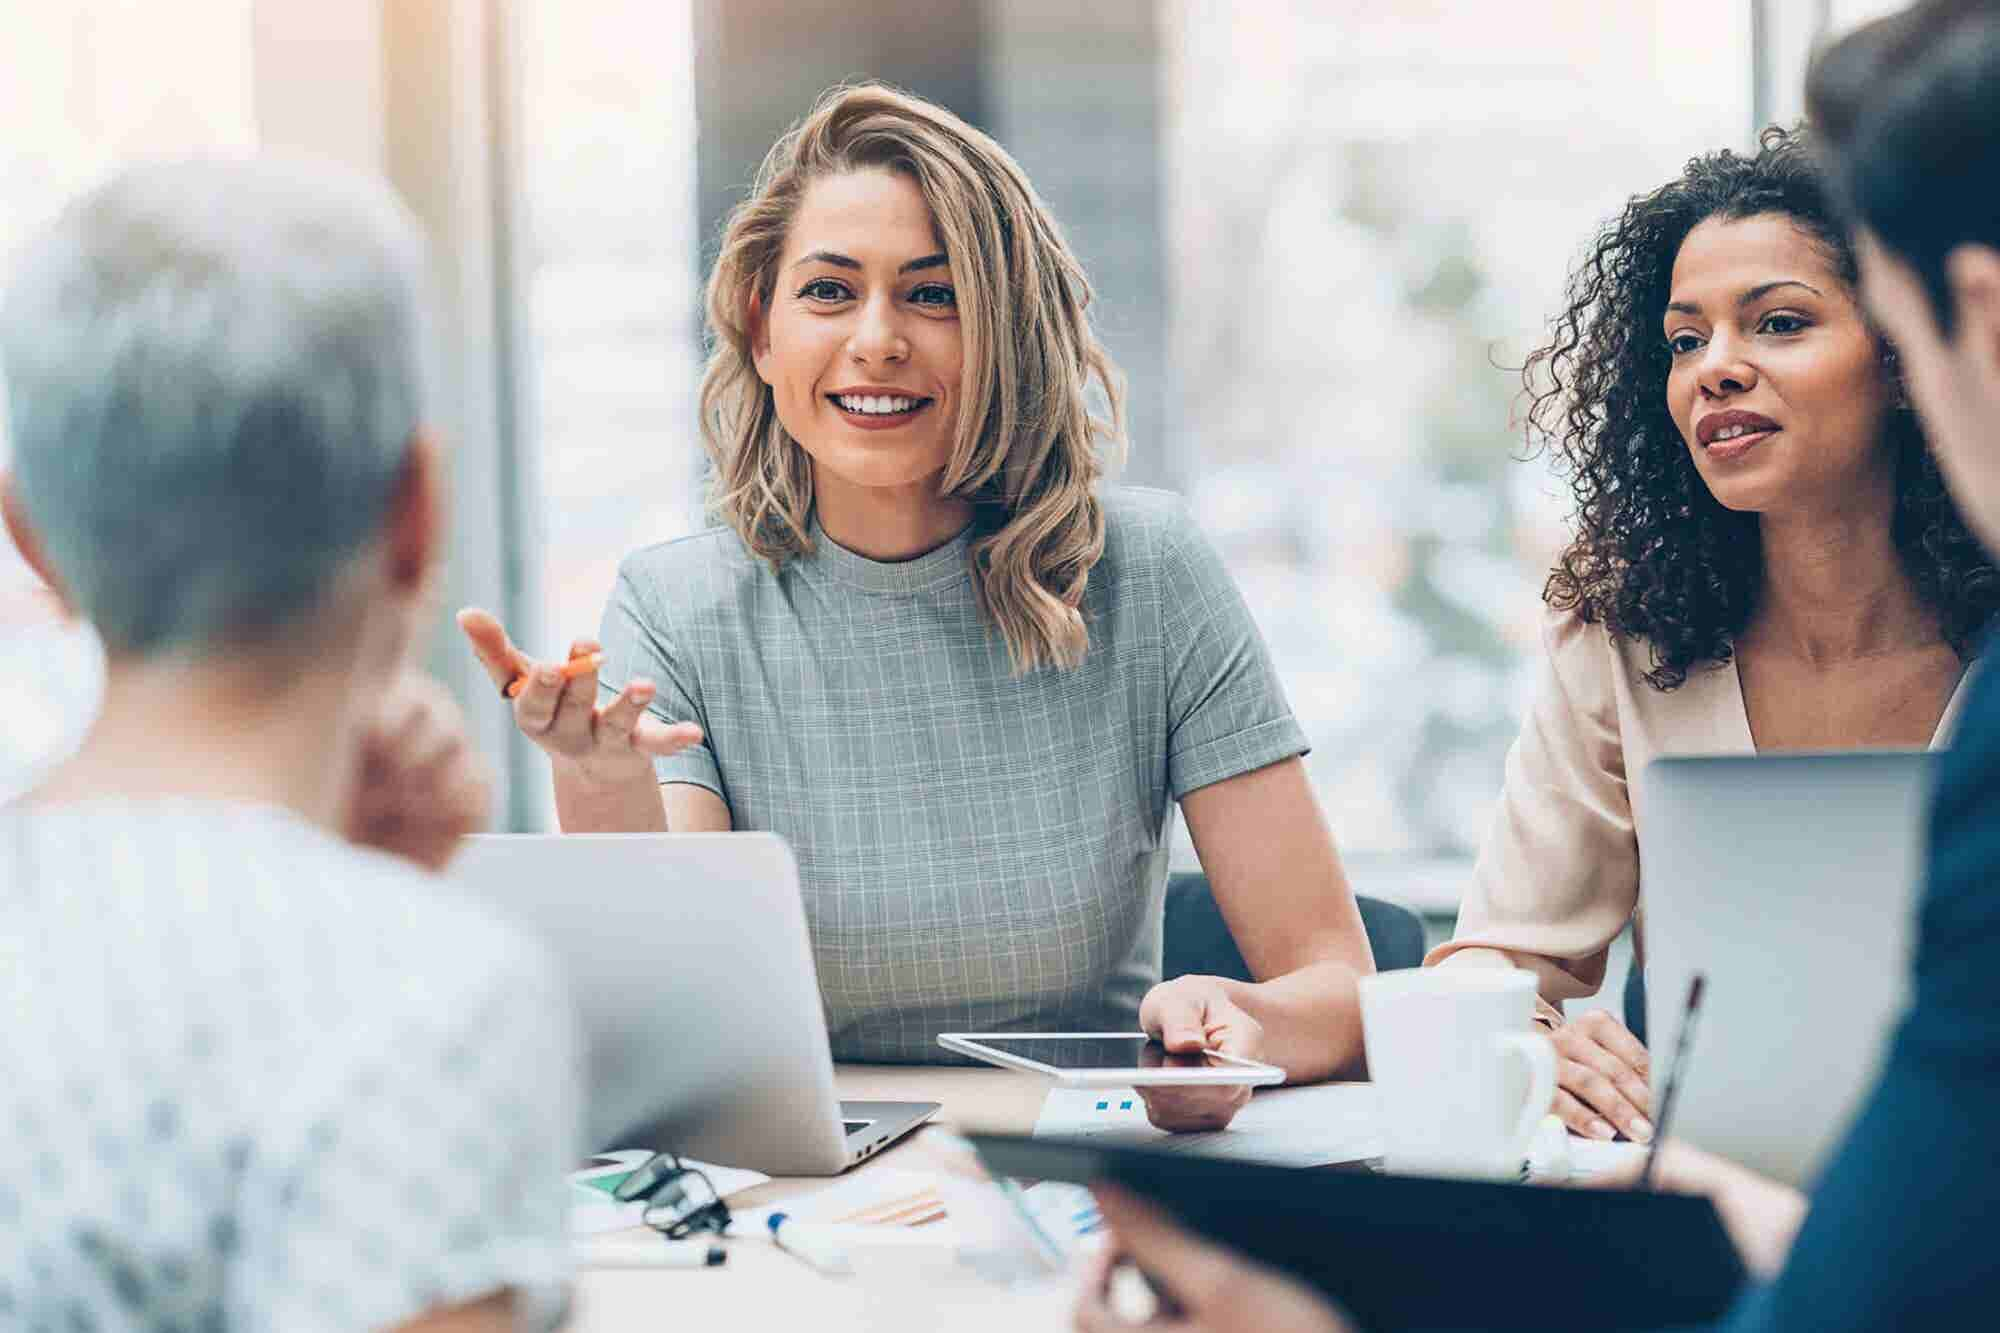 Why Leadership Is at the Crux of Closing the Gender Pay Gap